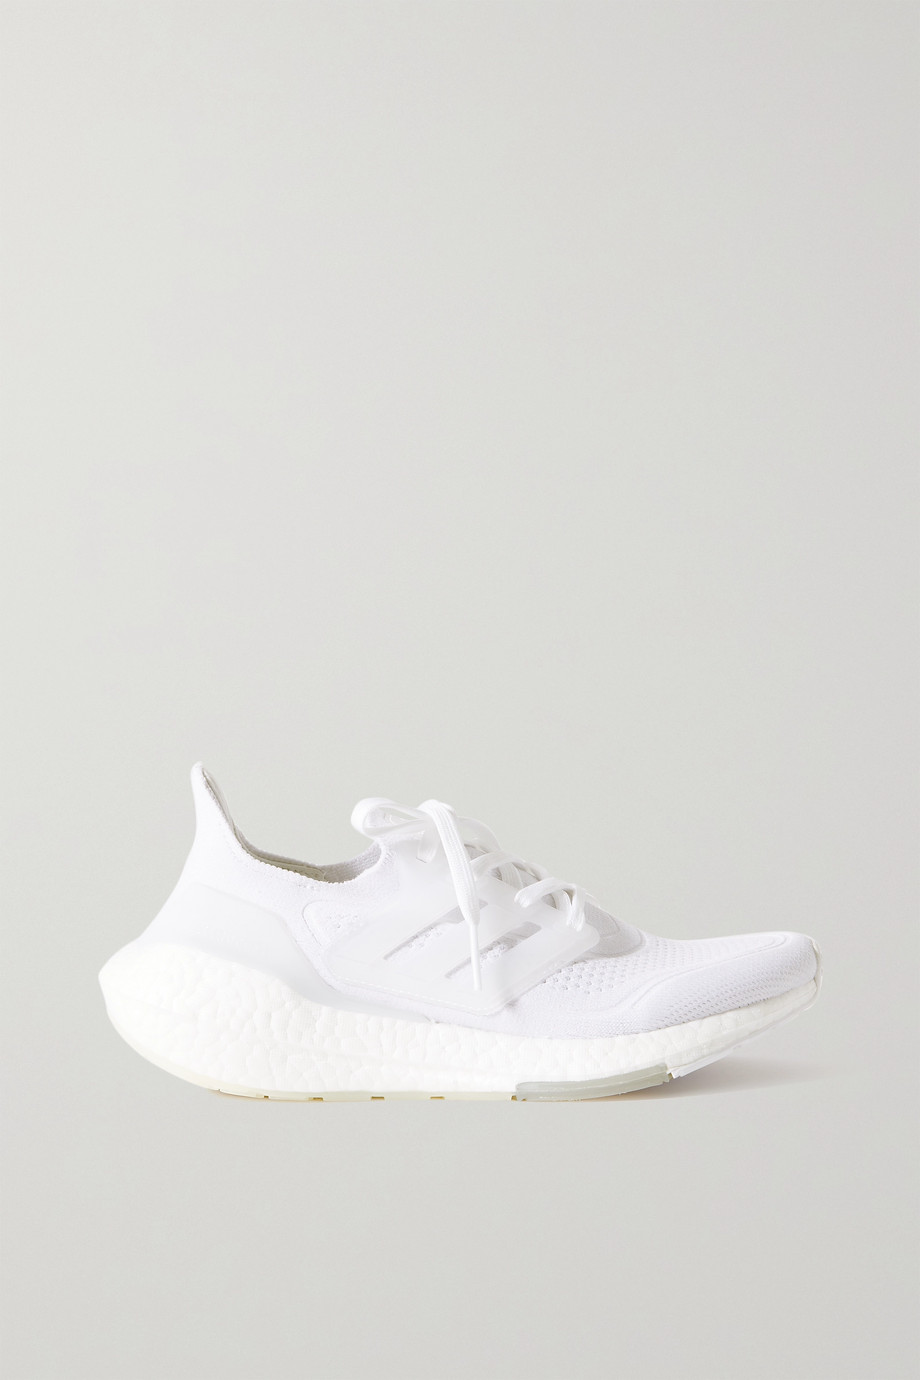 adidas Originals Ultraboost 21 rubber and Primeblue sneakers